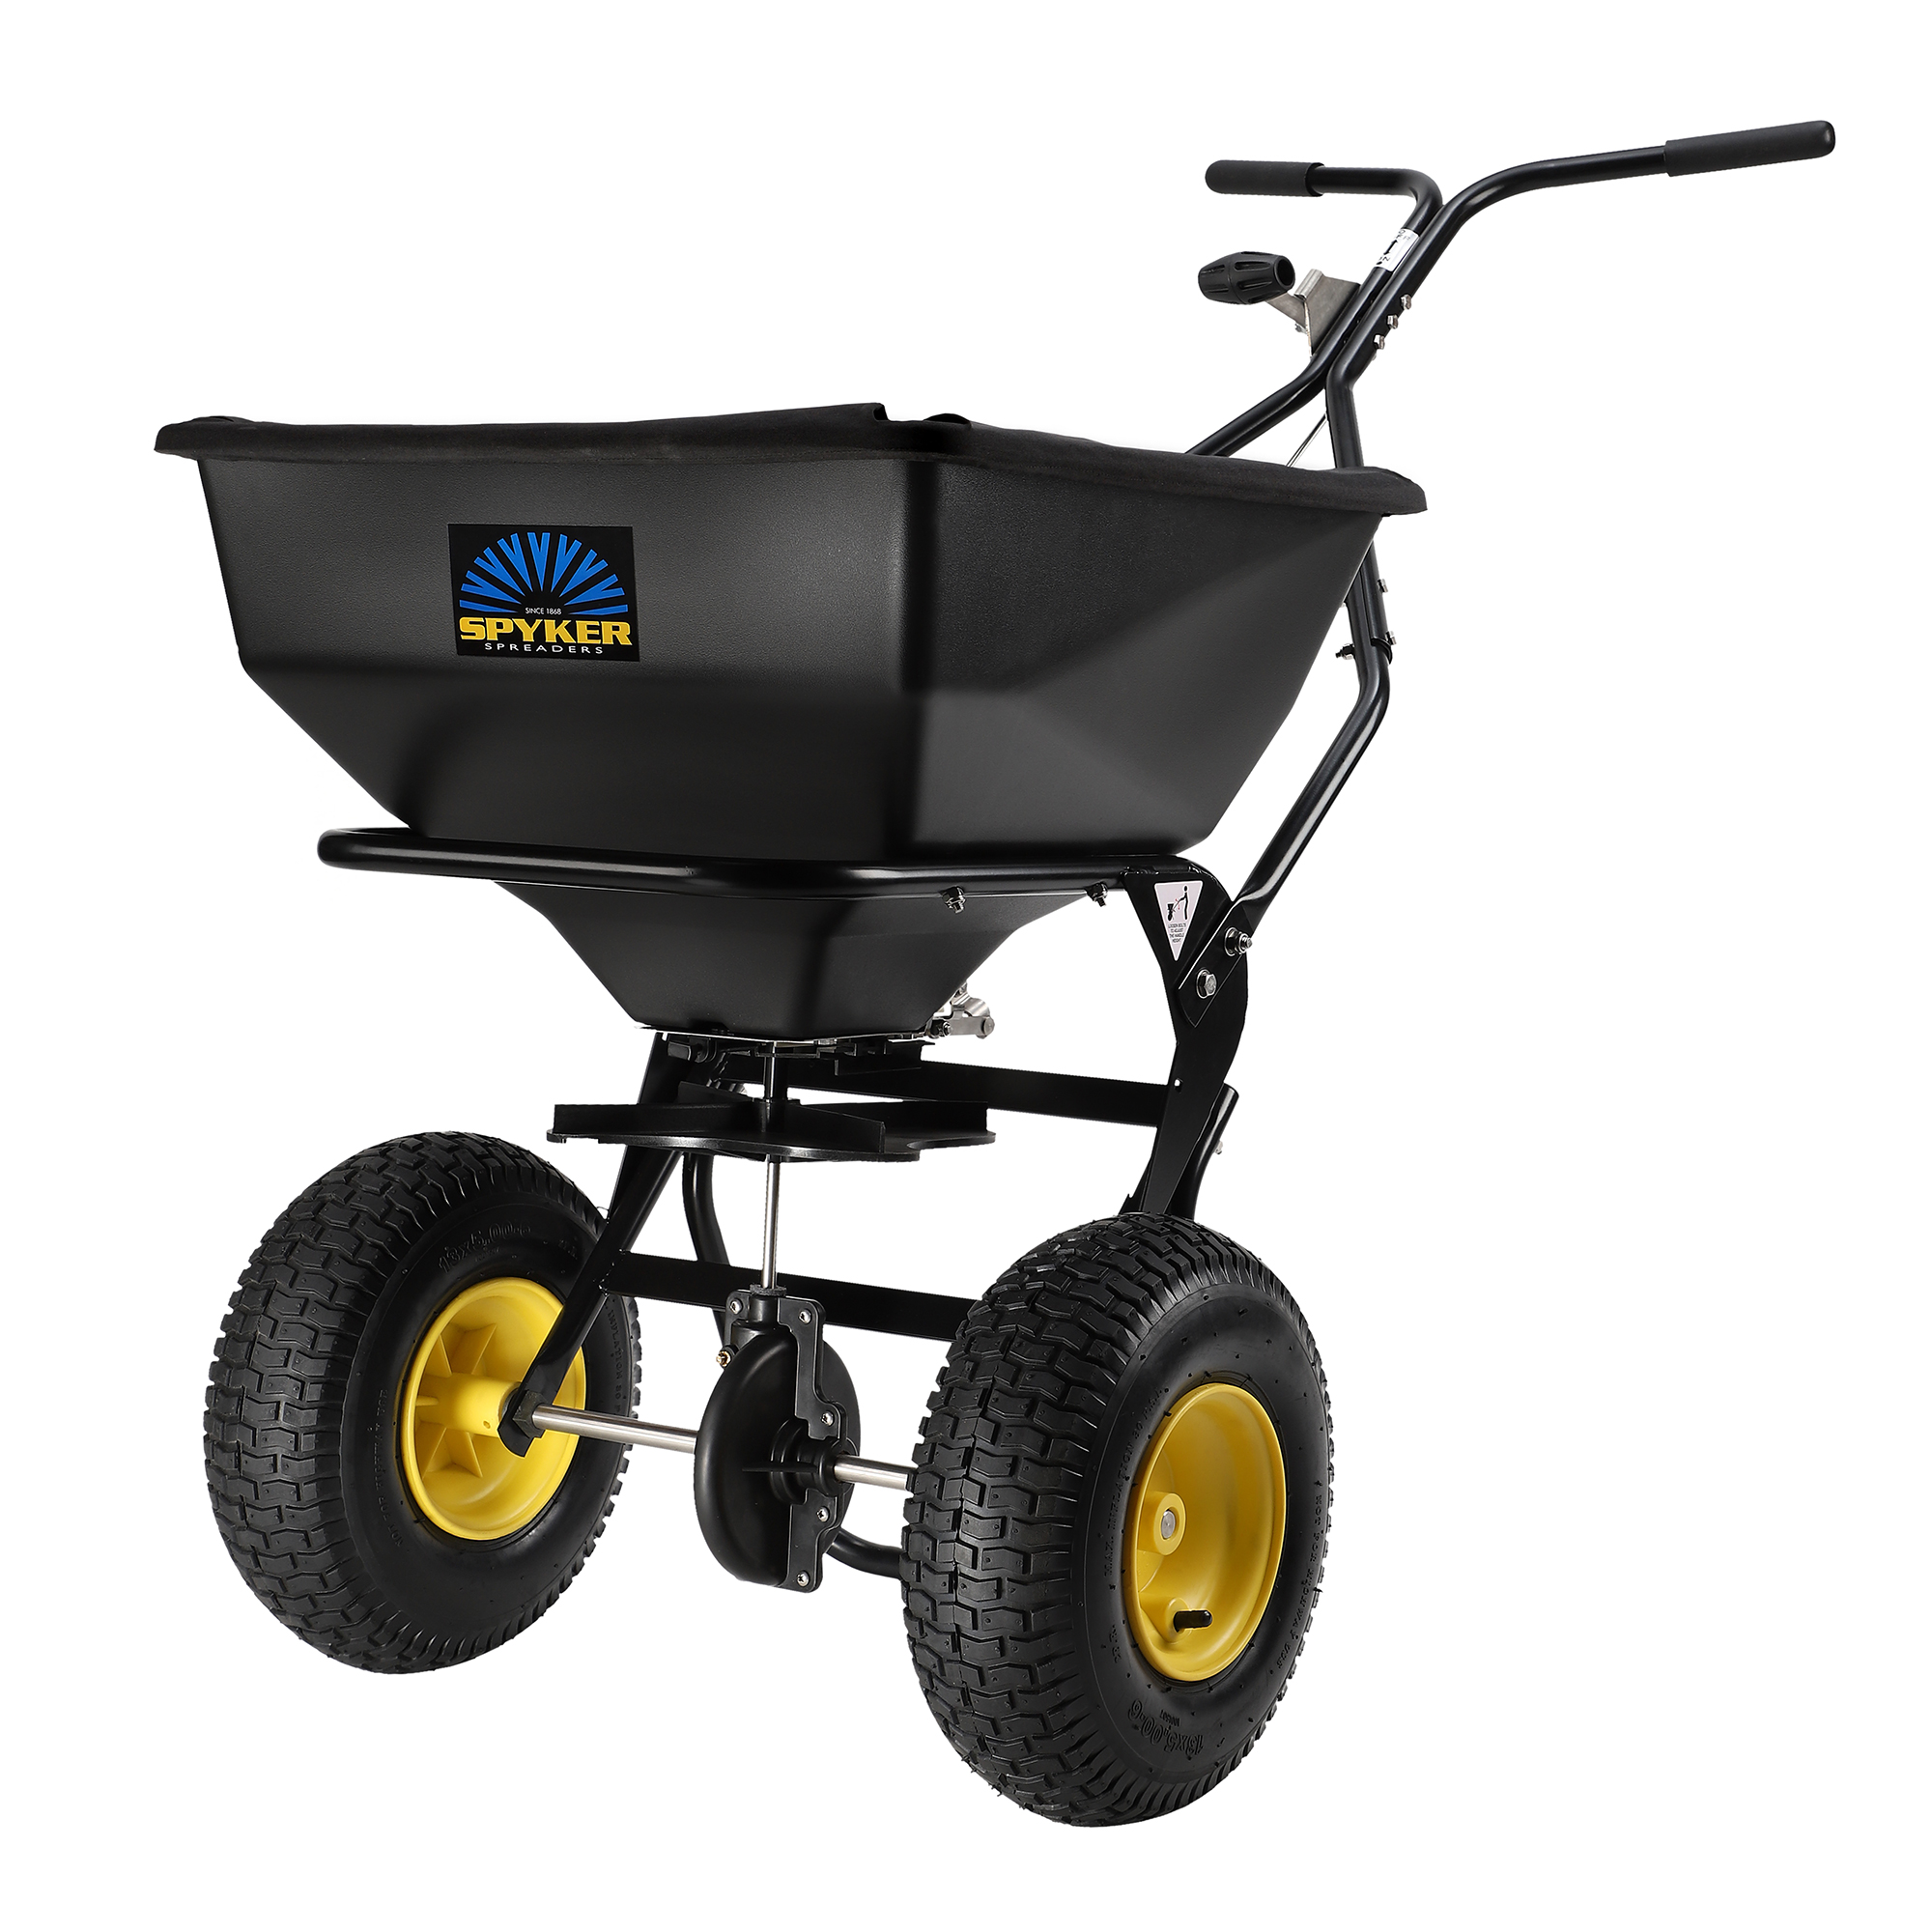 Spyker Ergo-Pro Walk-Behind Broadcast Spreader - 80-Lb. Capacity, Model# SPY80-1P